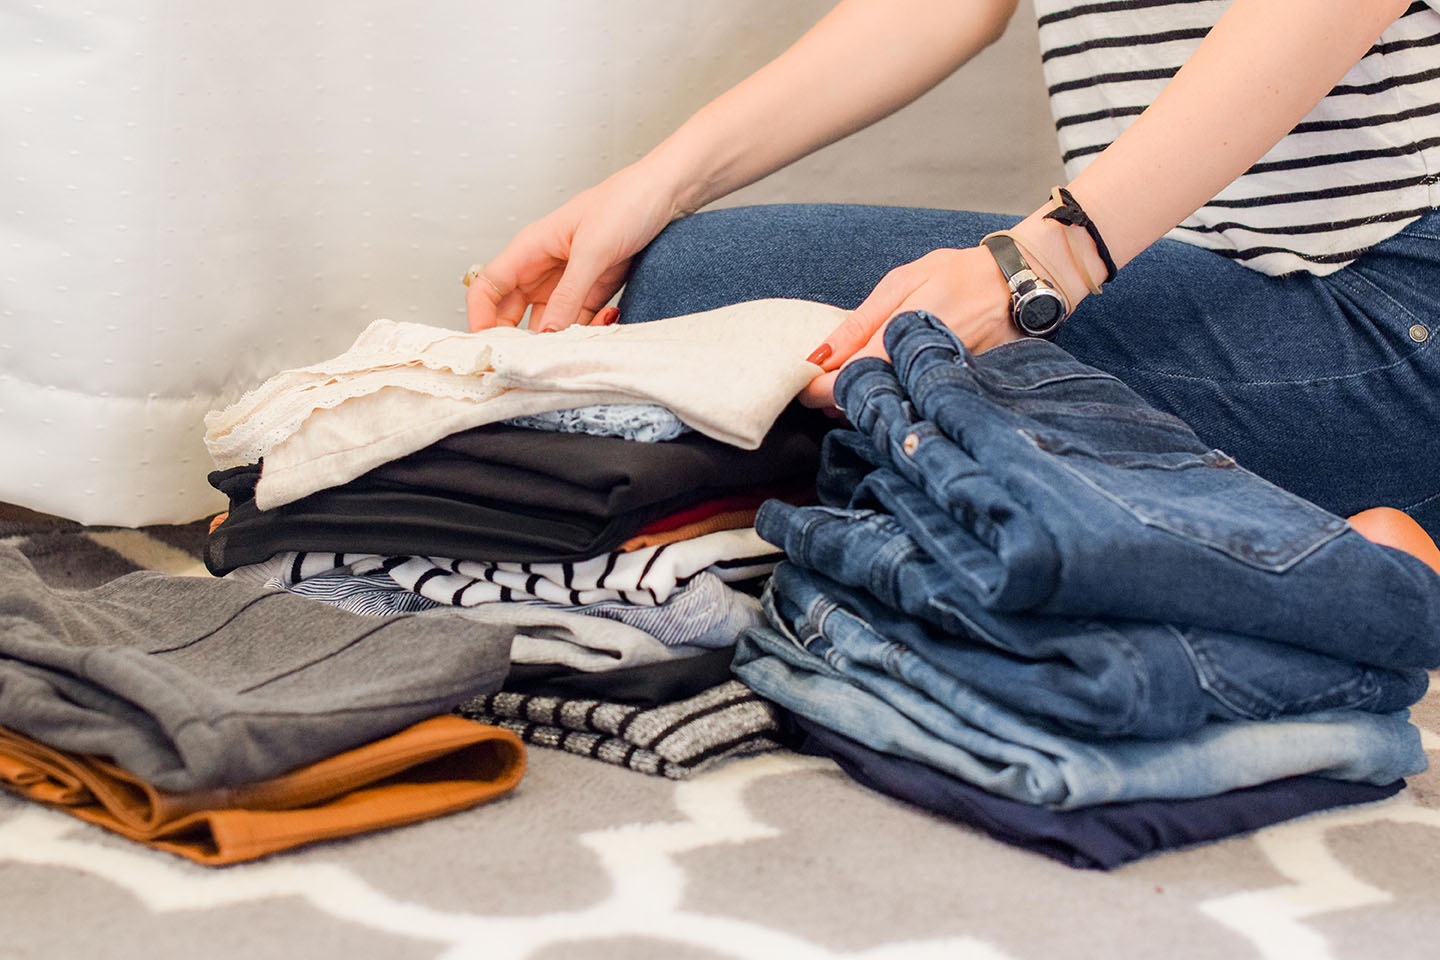 Woman folding her clothing.